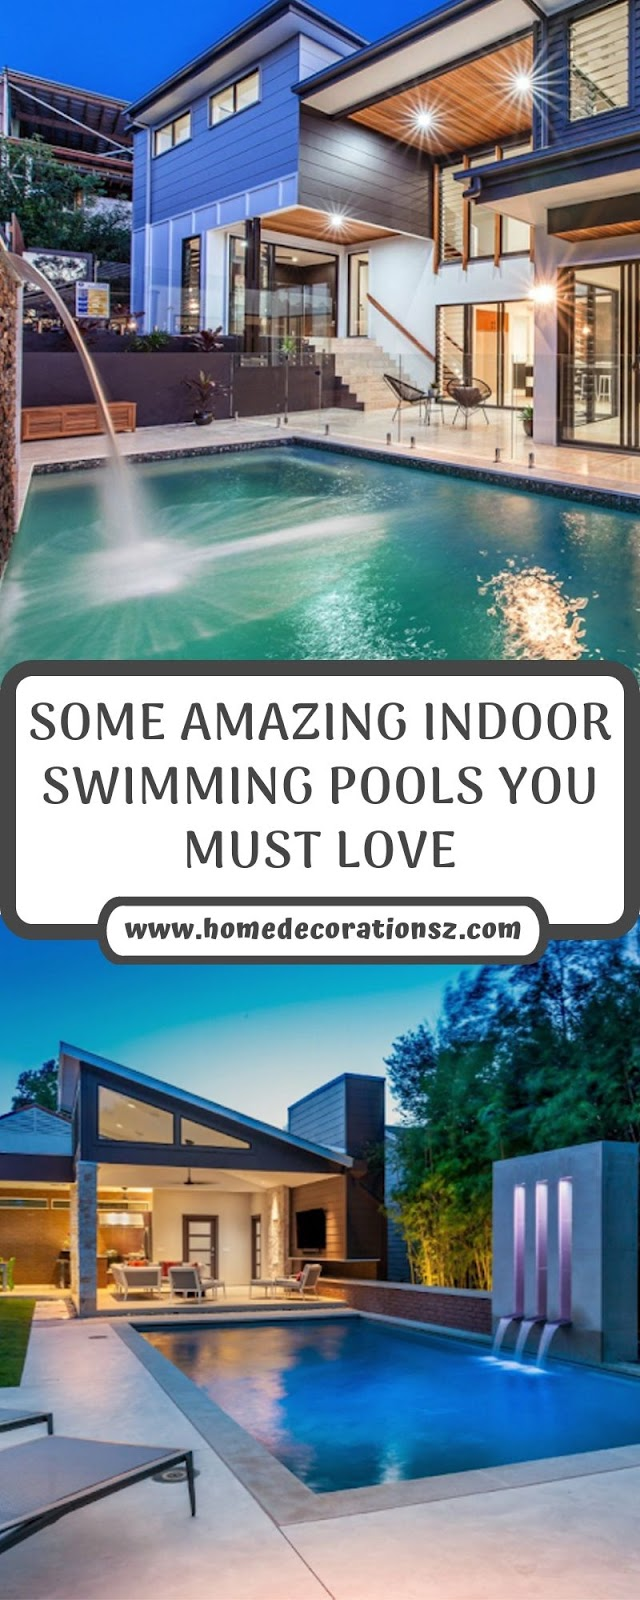 SOME AMAZING INDOOR SWIMMING POOLS YOU MUST LOVE